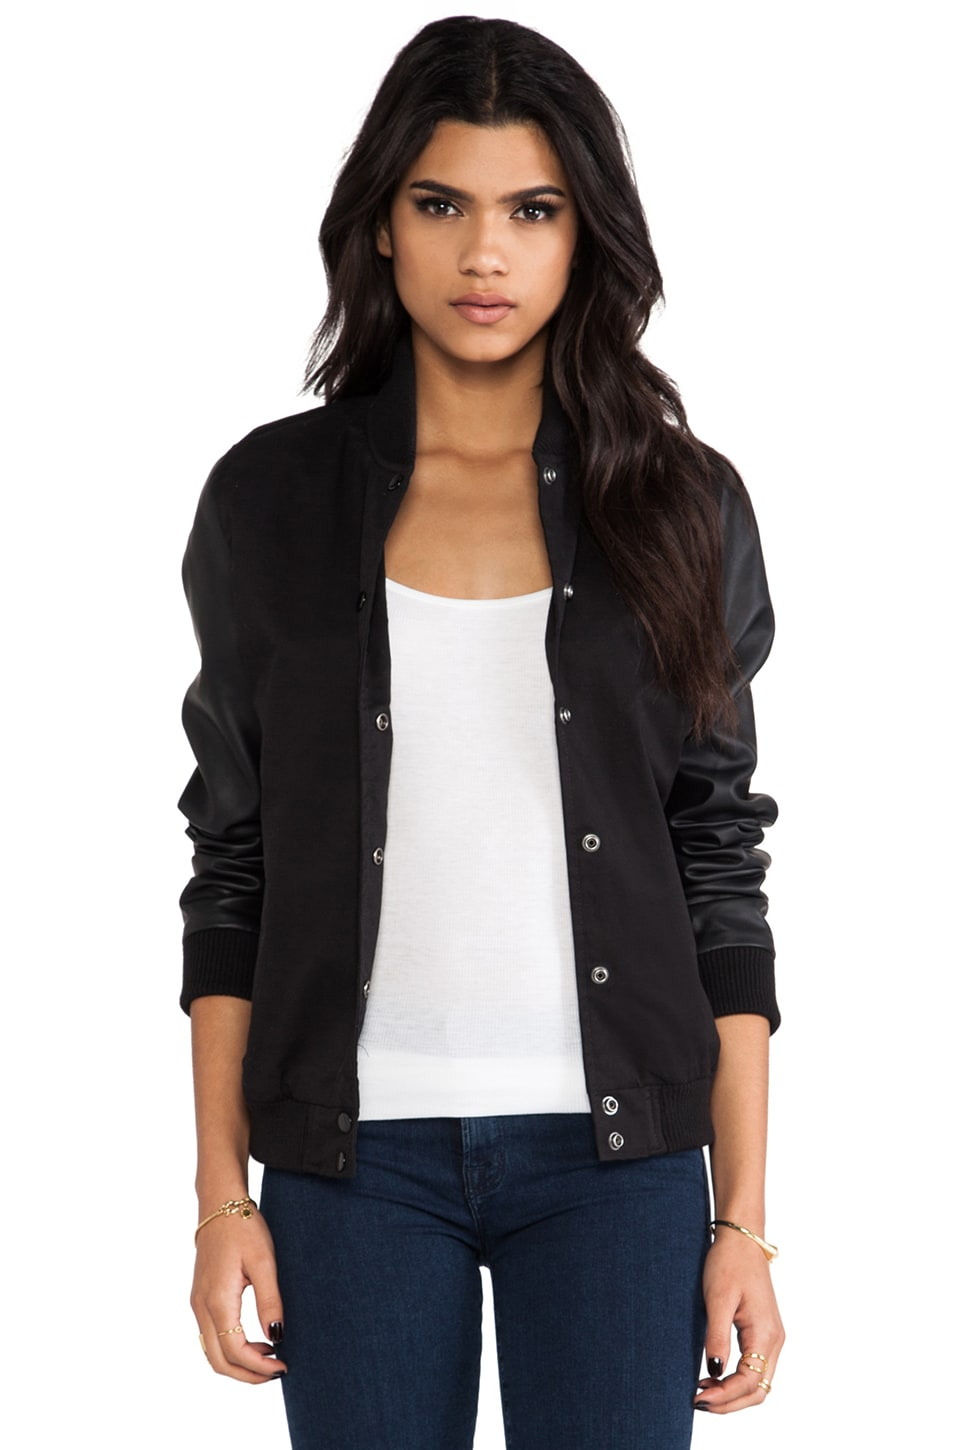 Obey Springtime Drop Out Jacket in Black